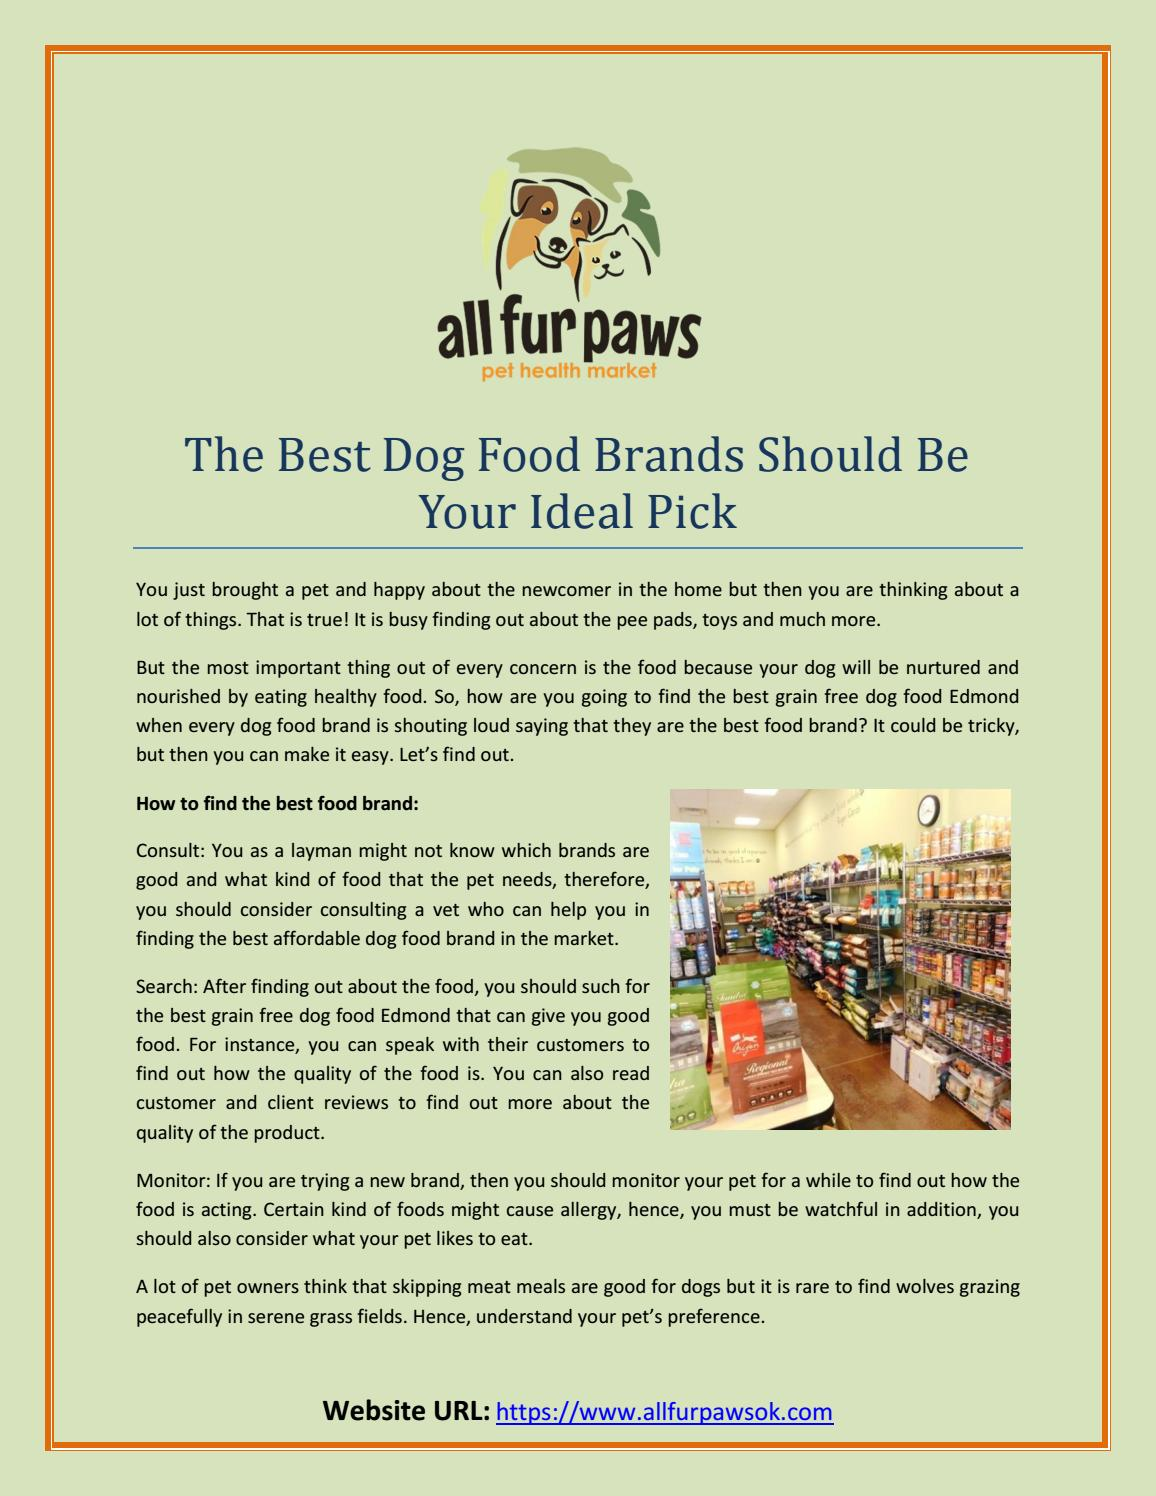 The Best Affordable Dog Food Brand By Vinay Tiwari Issuu